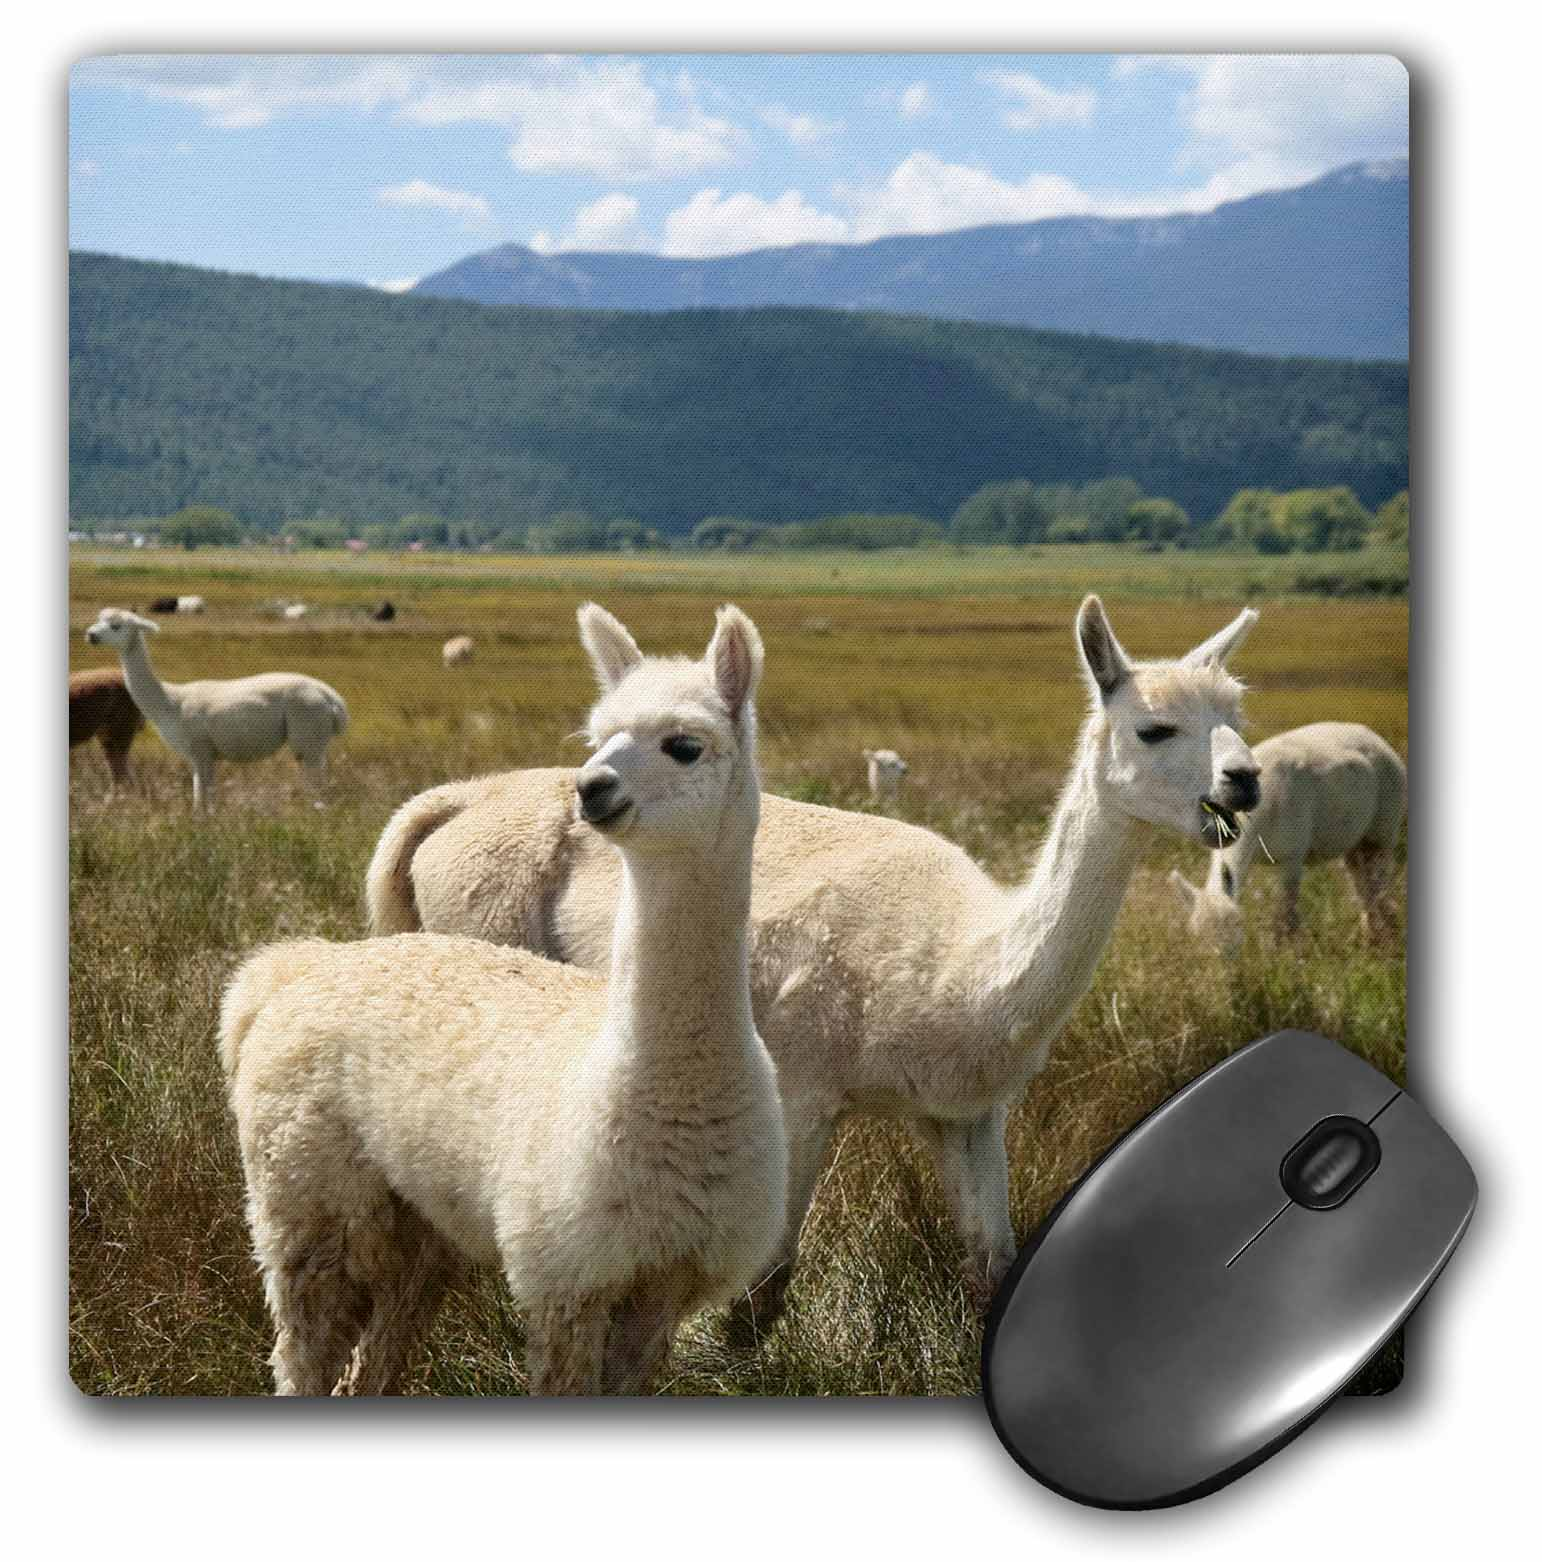 3dRose Victory Ranch Alpaca farm, Mora, New Mexico - US32 JMR0361 - Julien McRoberts, Mouse Pad, 8 by 8 inches